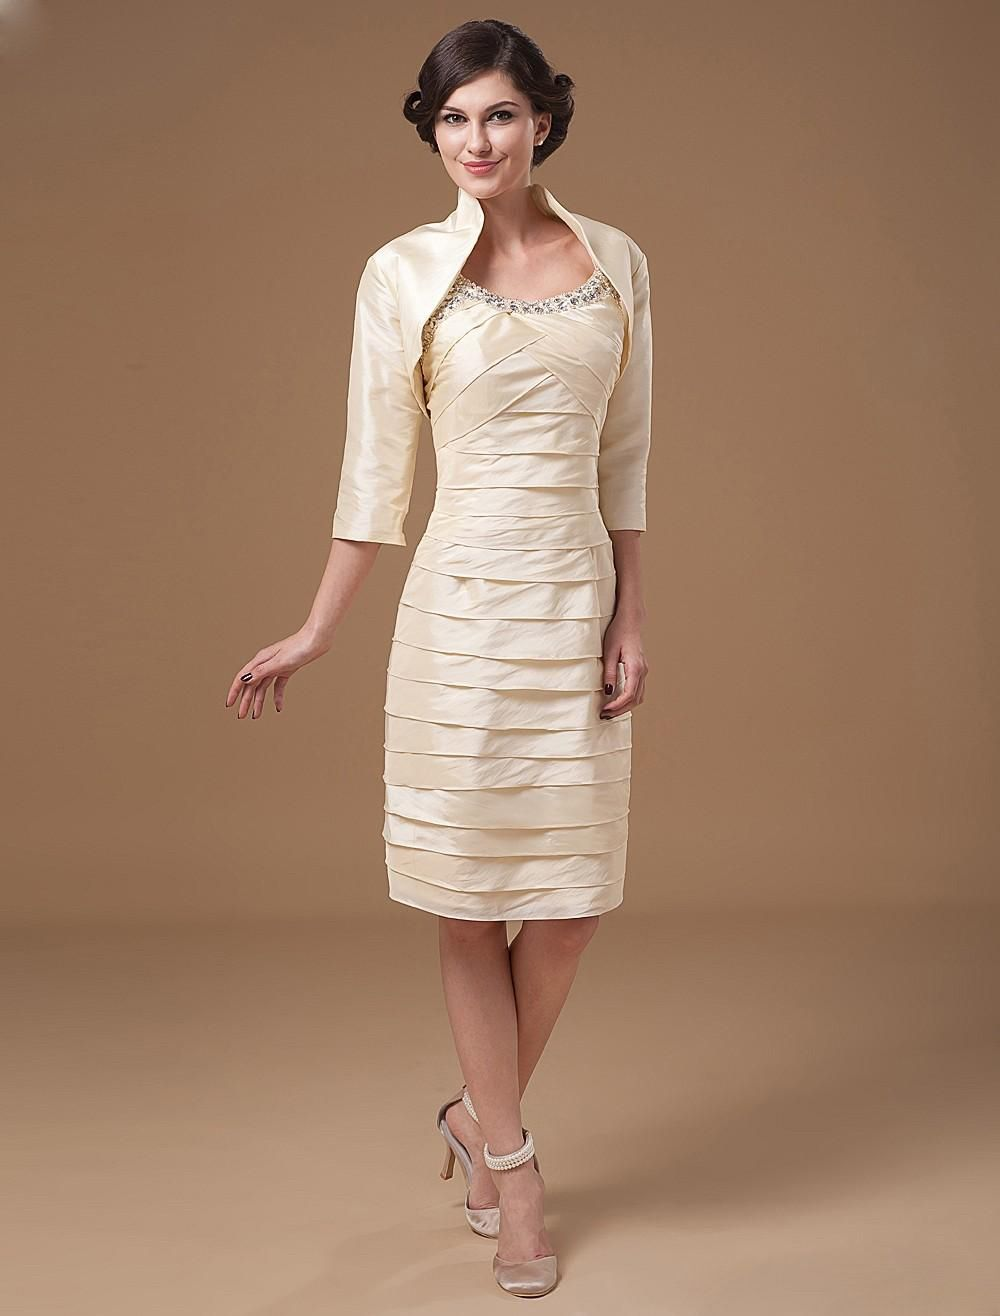 Dresses for wedding reception for bride  Taffeta Scoop Beads Knee Length Mothers Of Bride Guests Dress